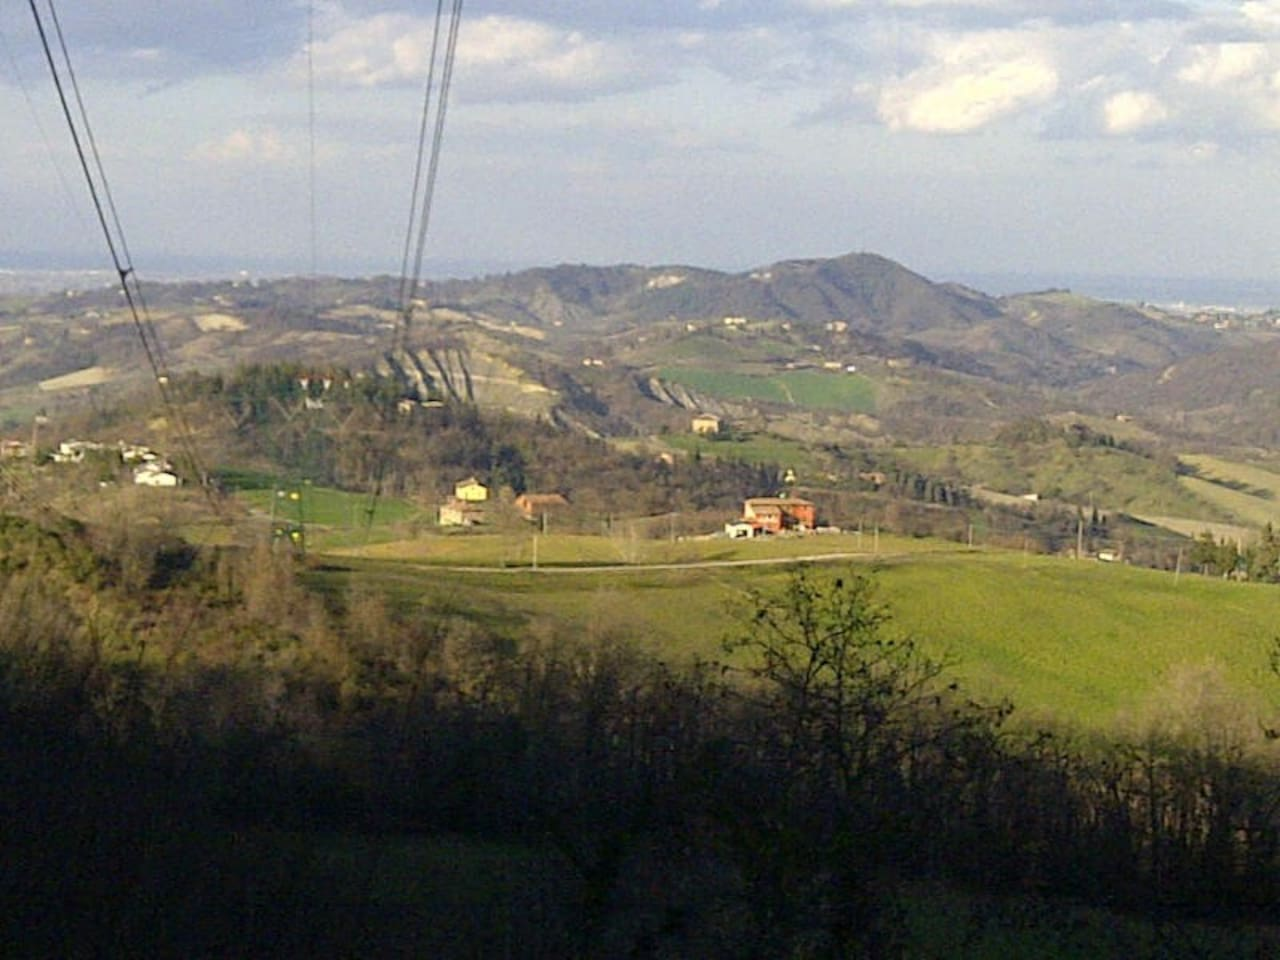 Bazziganta overlooking the Colli Bolognesi towards the Po Valley